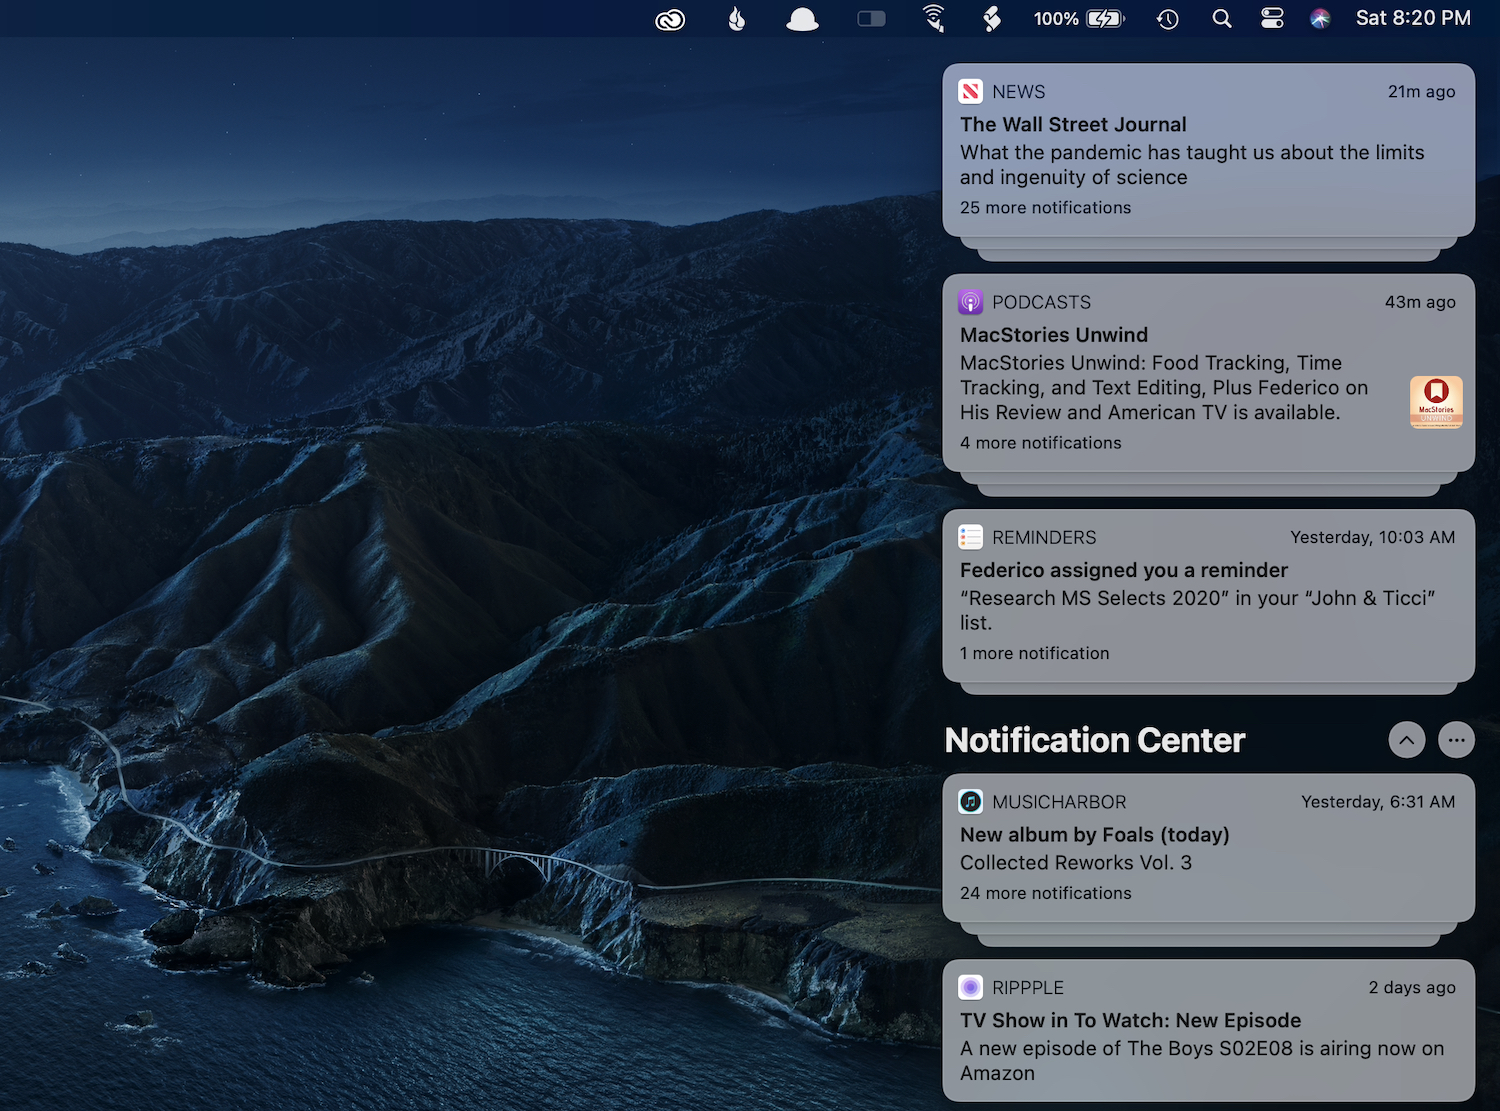 Notification Center expanded.